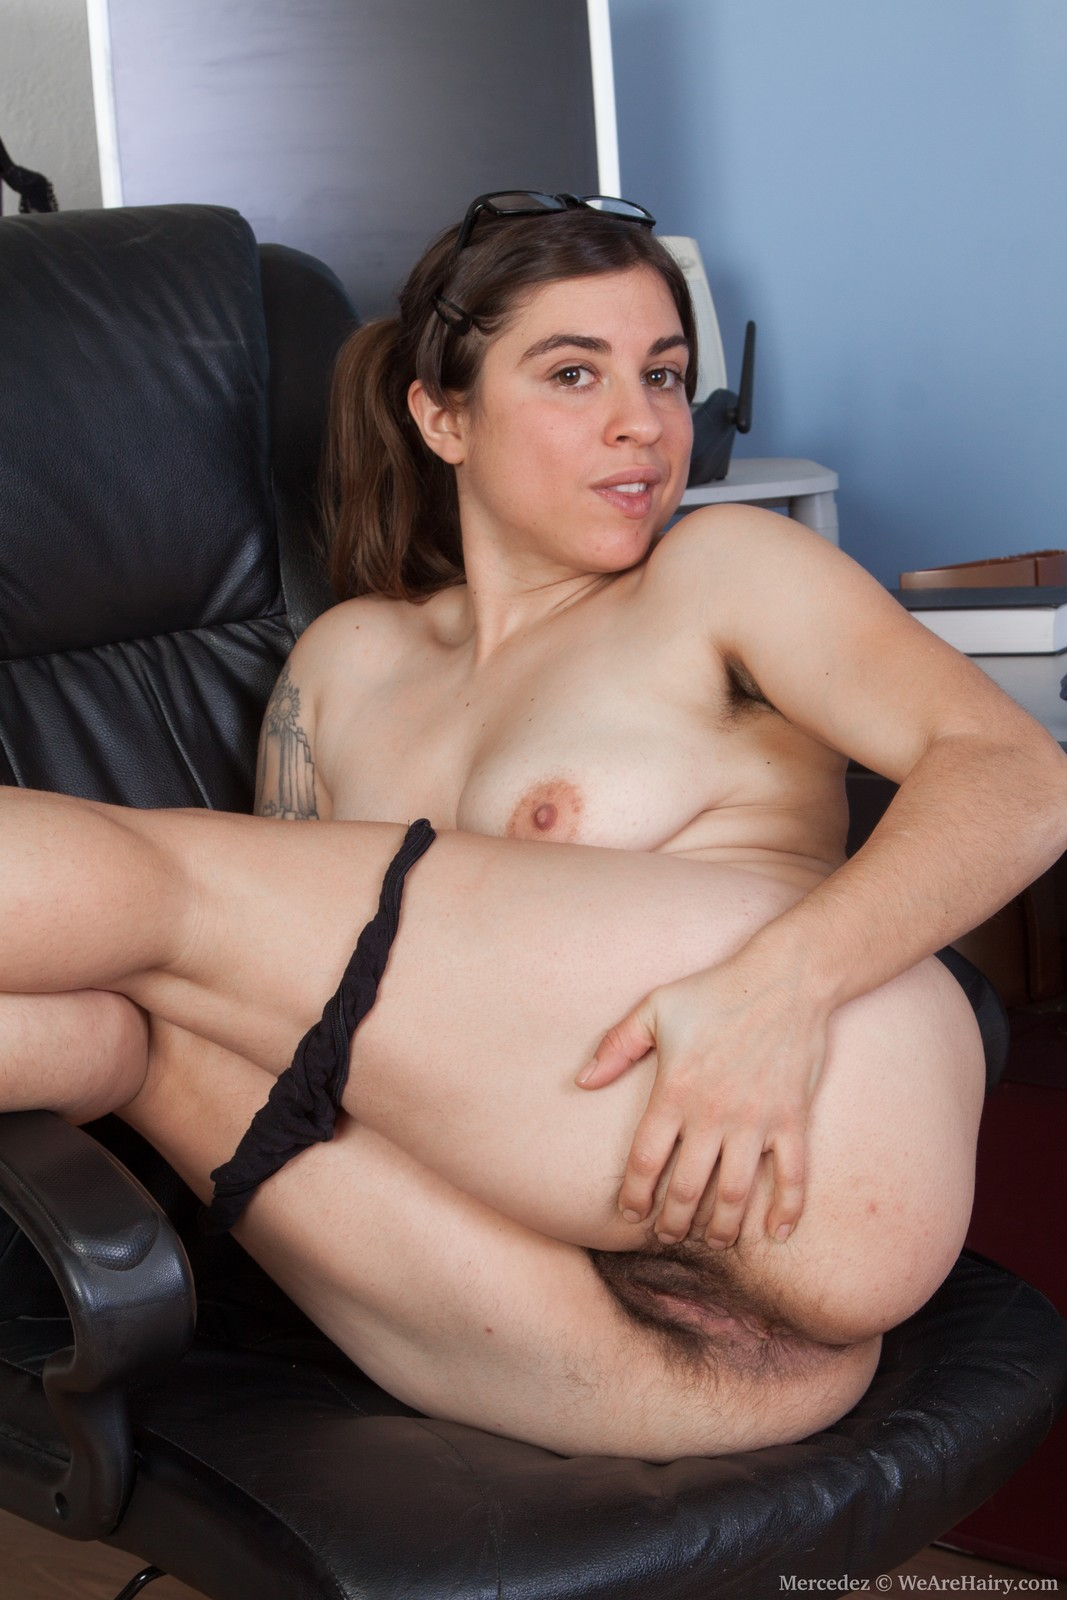 Spread eagle naked bound